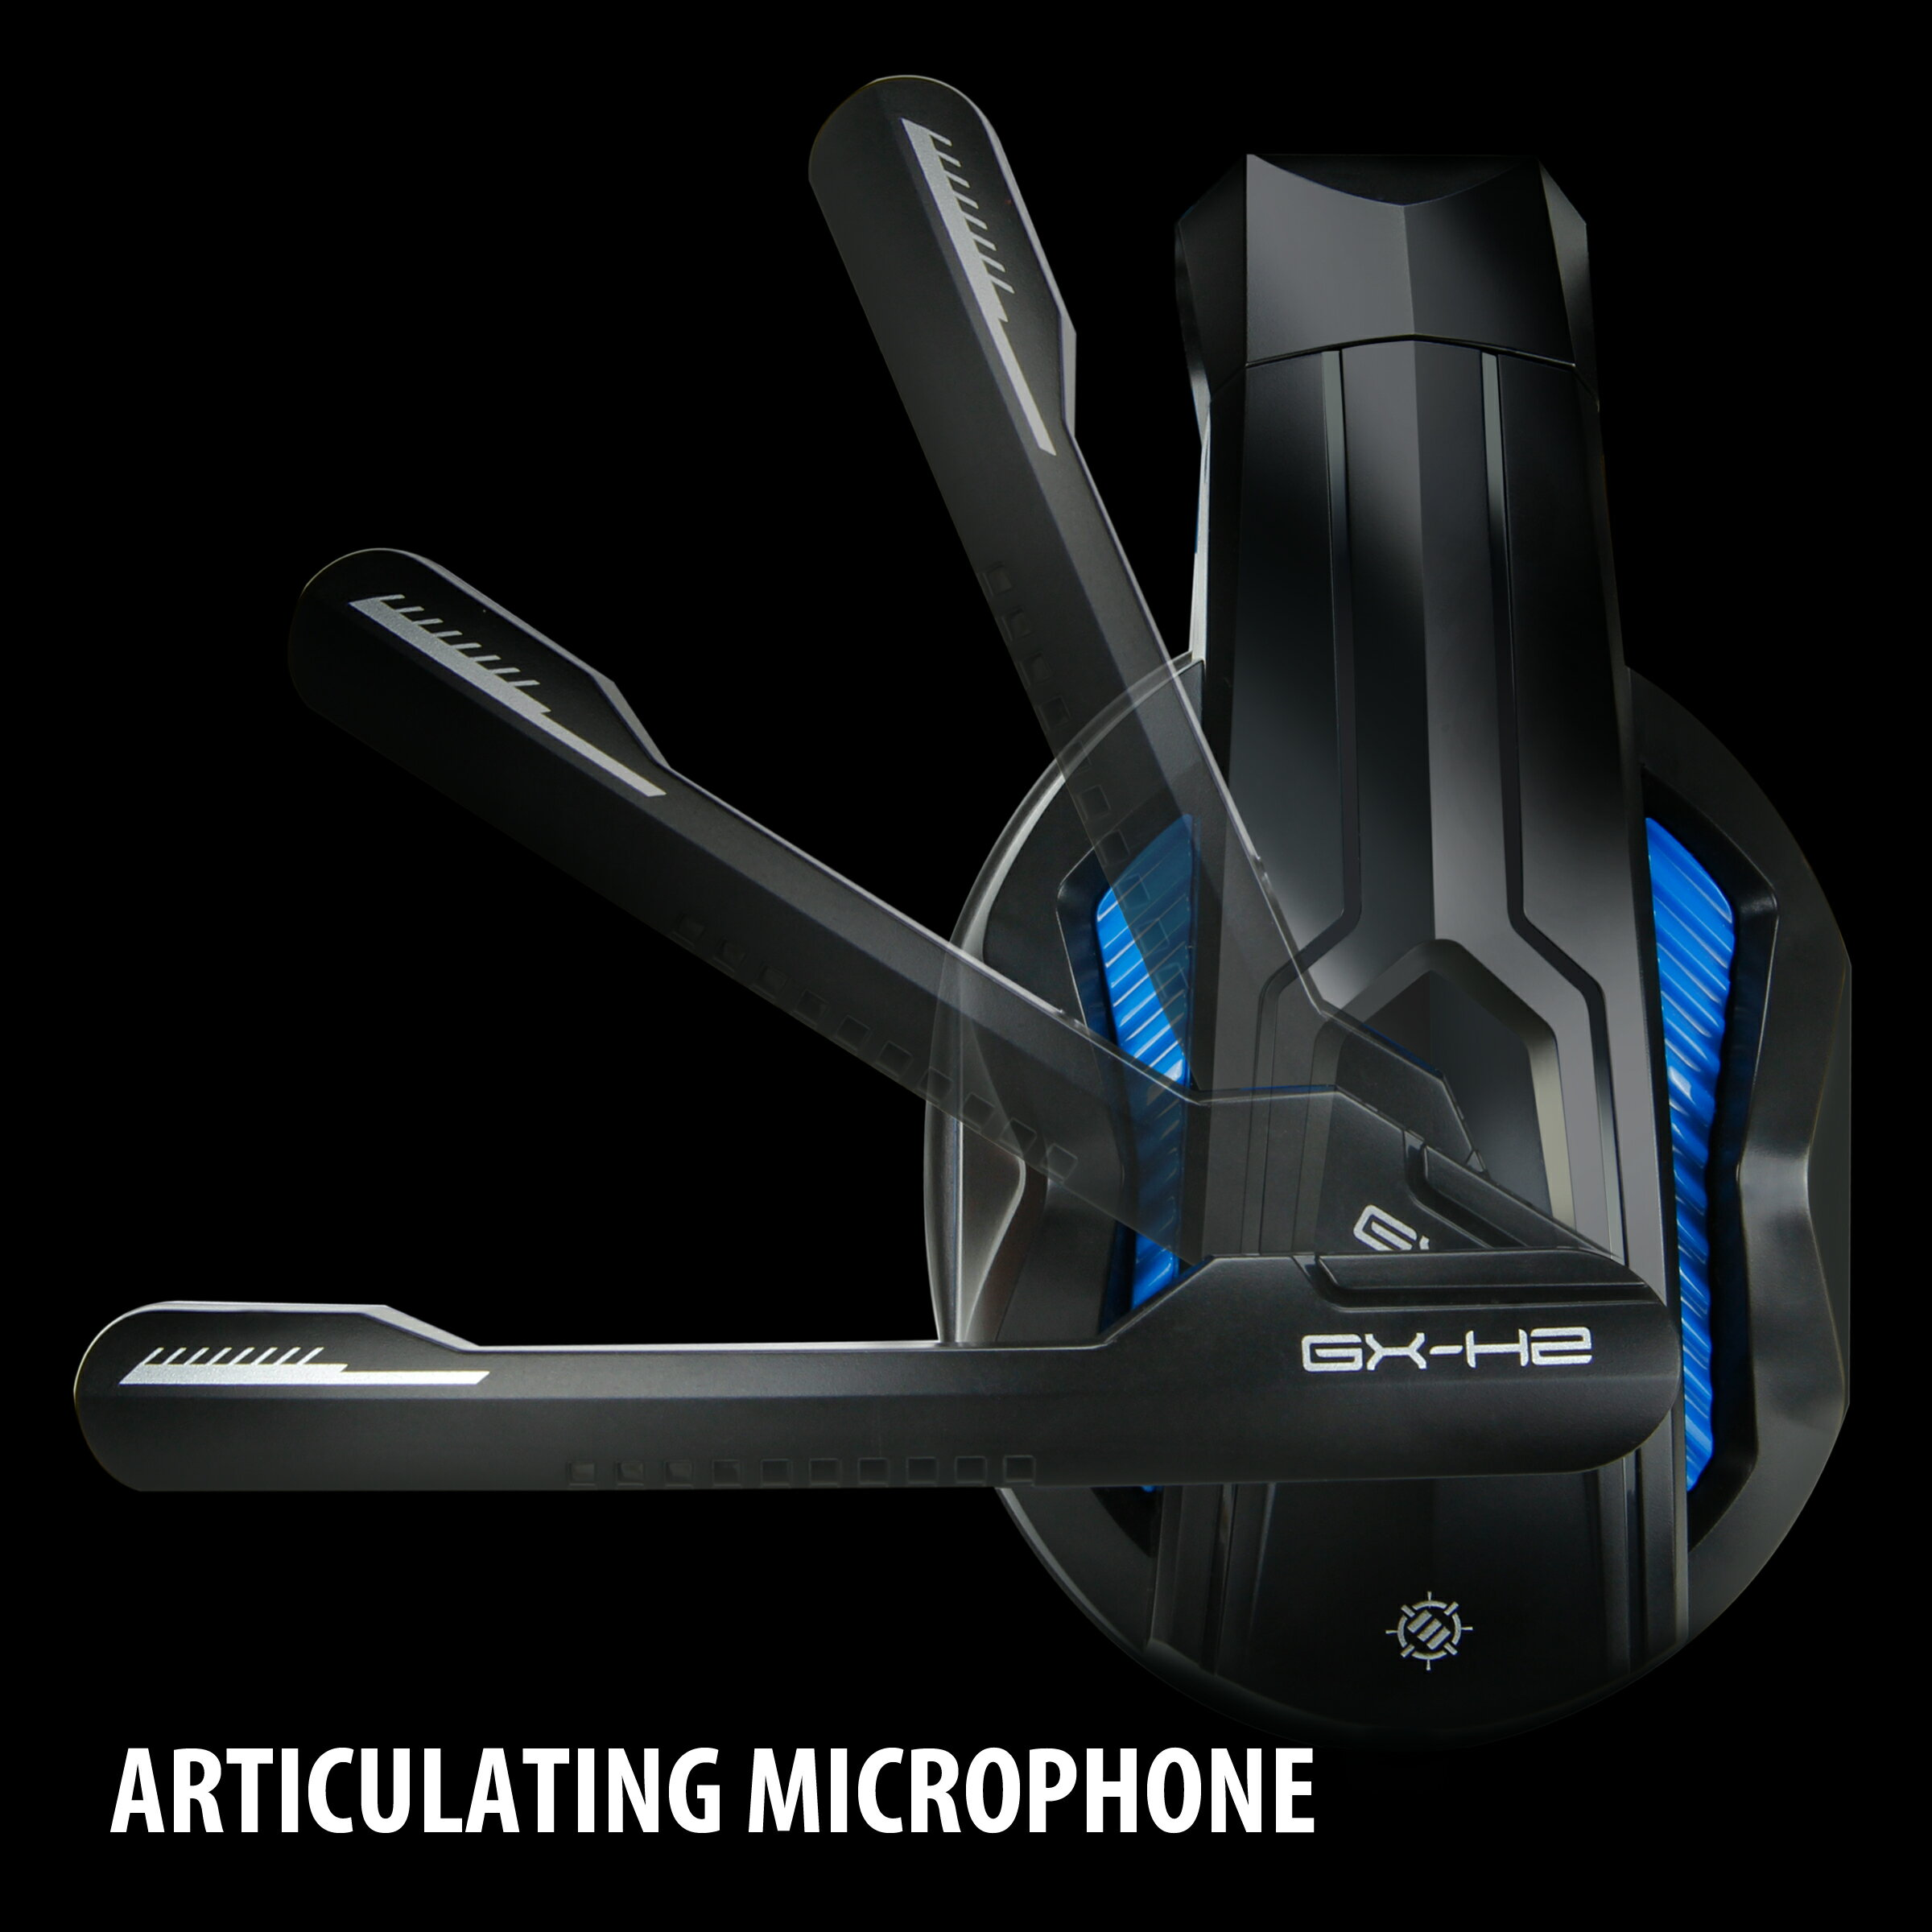 ENHANCE GX-H2 PC Headset with Comfortable Ear Padding and Adjustable Mic Works with Desktops 3